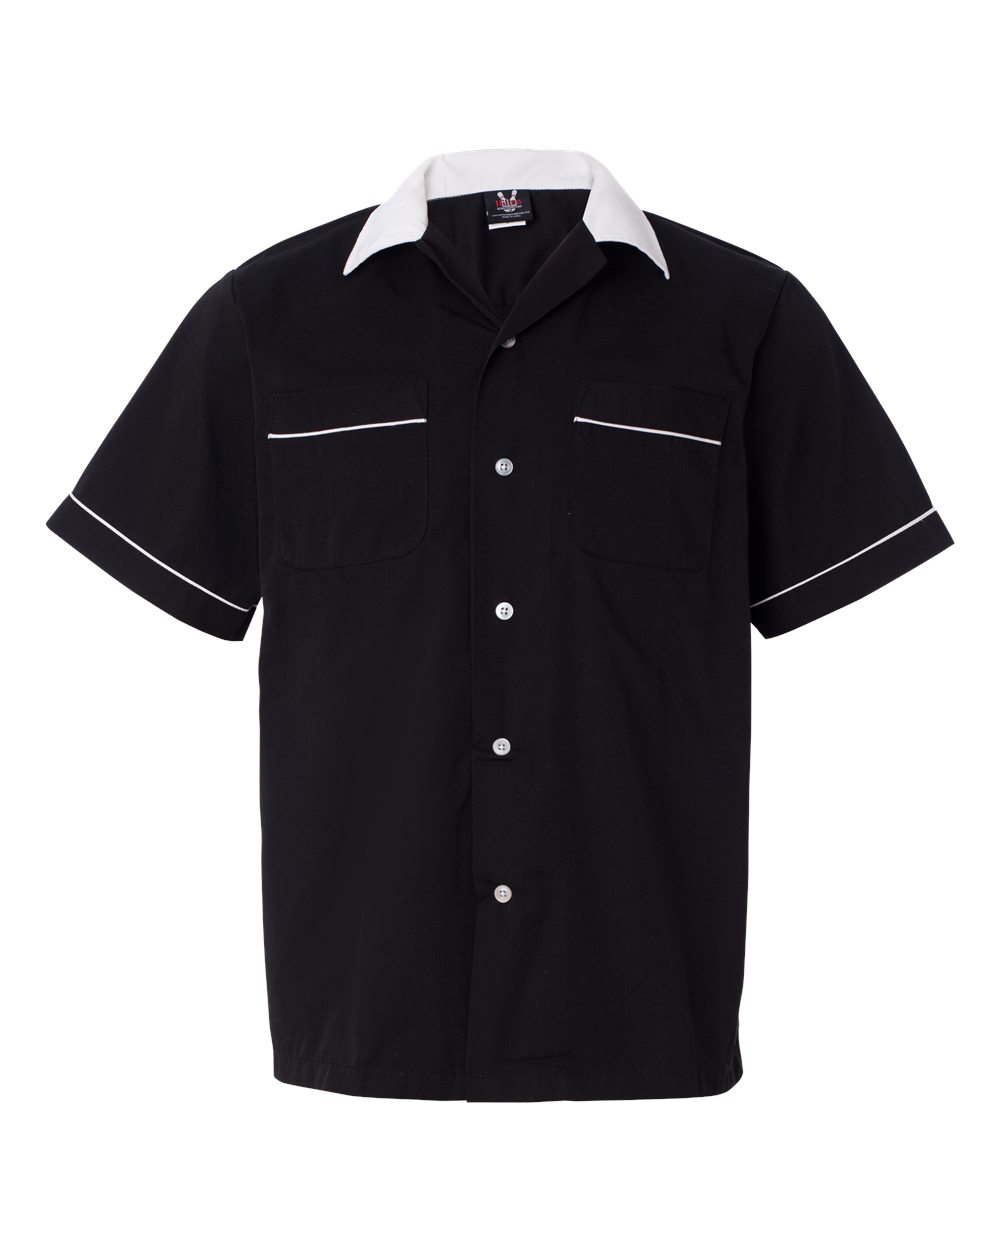 1950s Style Mens Shirts Classic Bowler 2.0 Bowling Shirt - Black  White $39.95 AT vintagedancer.com